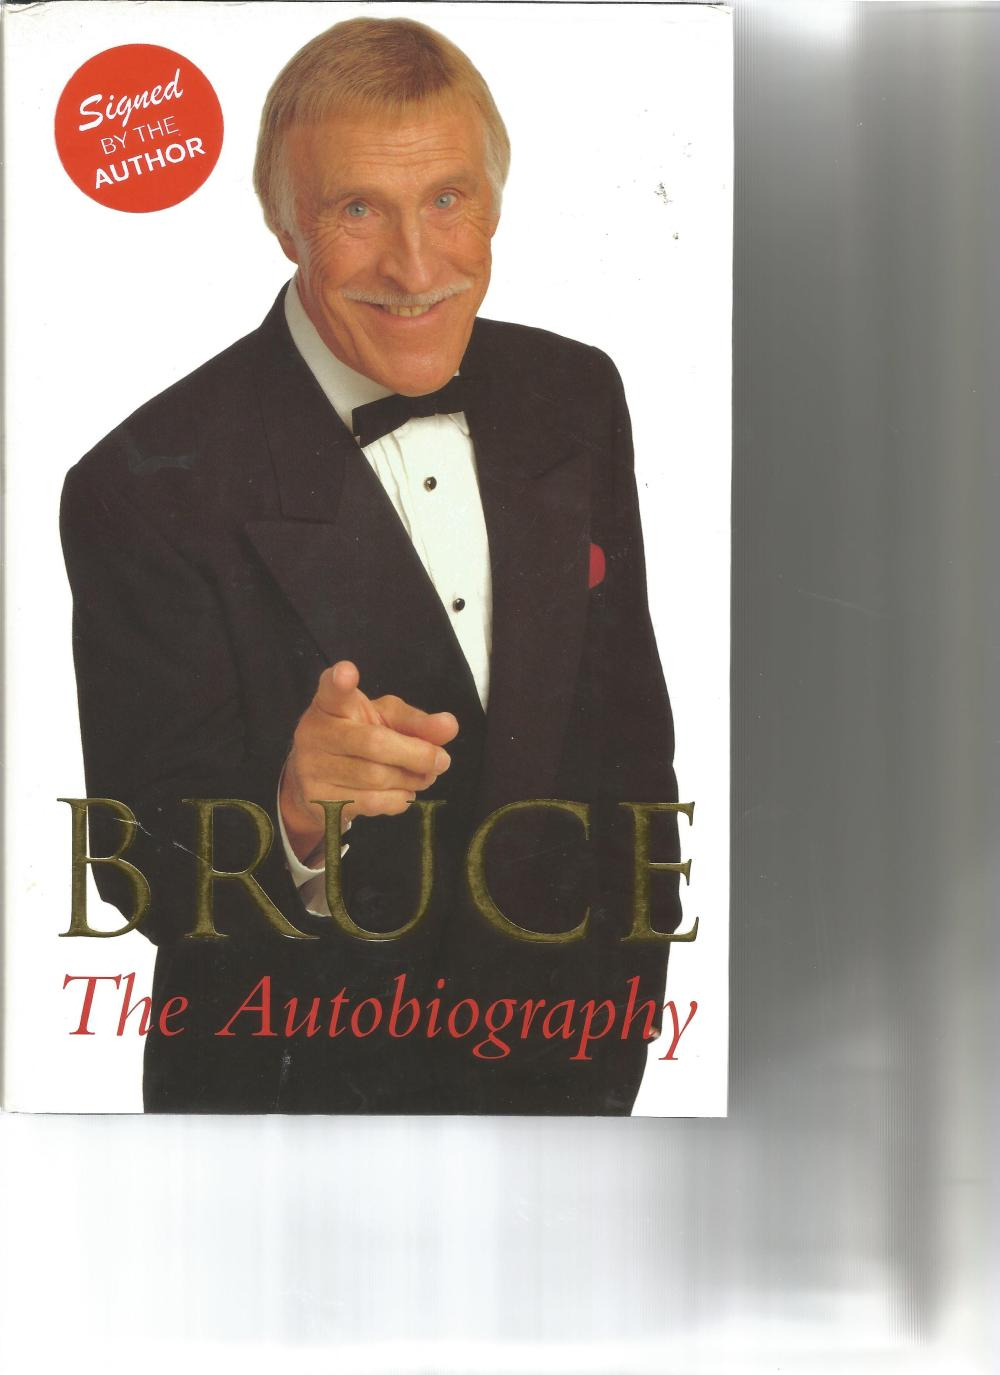 Bruce Forsyth signed Bruce - the autobiography hardback book. Signed on inside title page. Good